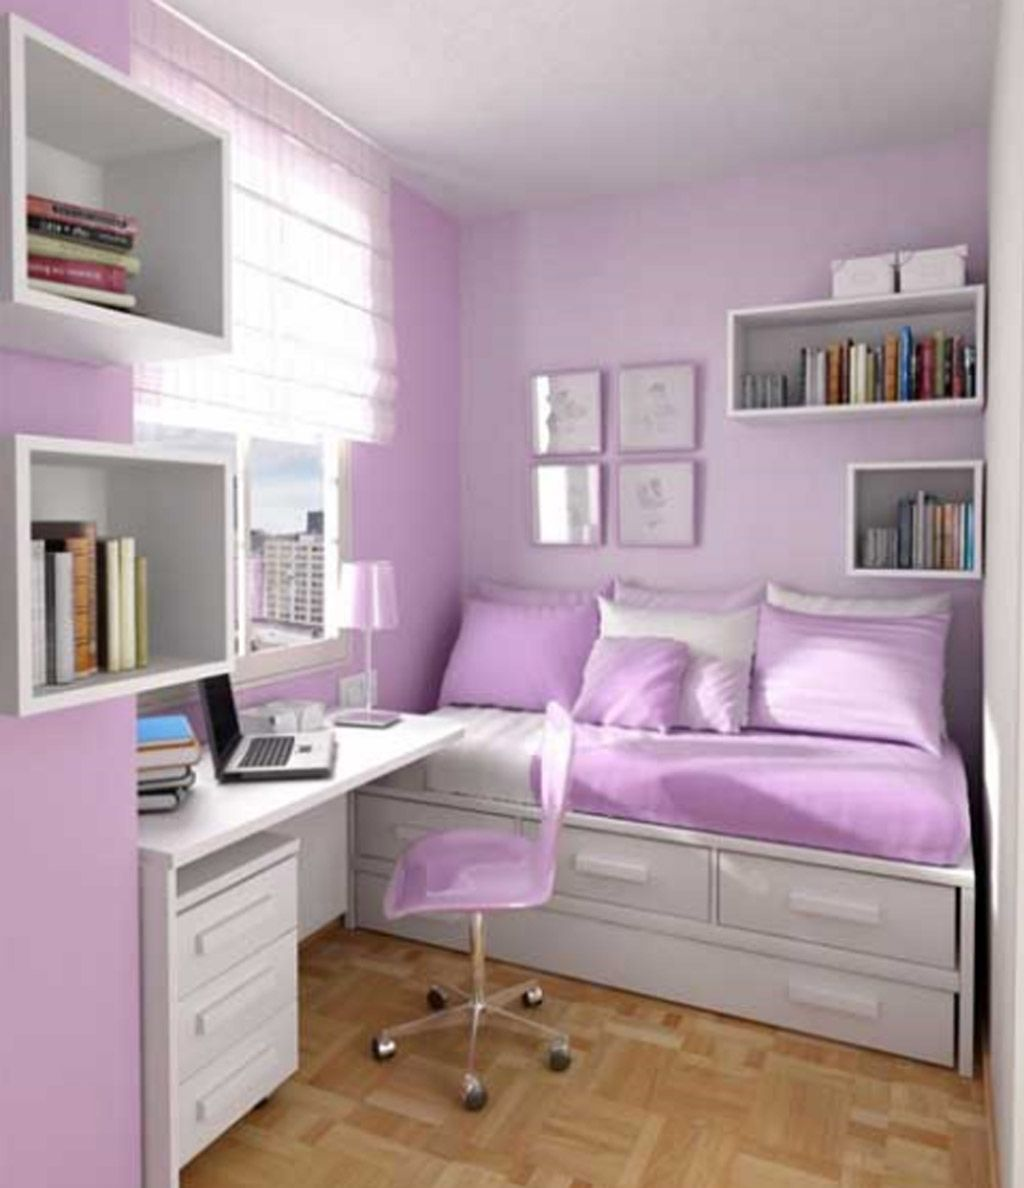 Cute Bedroom Ideas For Teenage Girls   Best Interior Design Blogs | Fashion  | Pinterest |